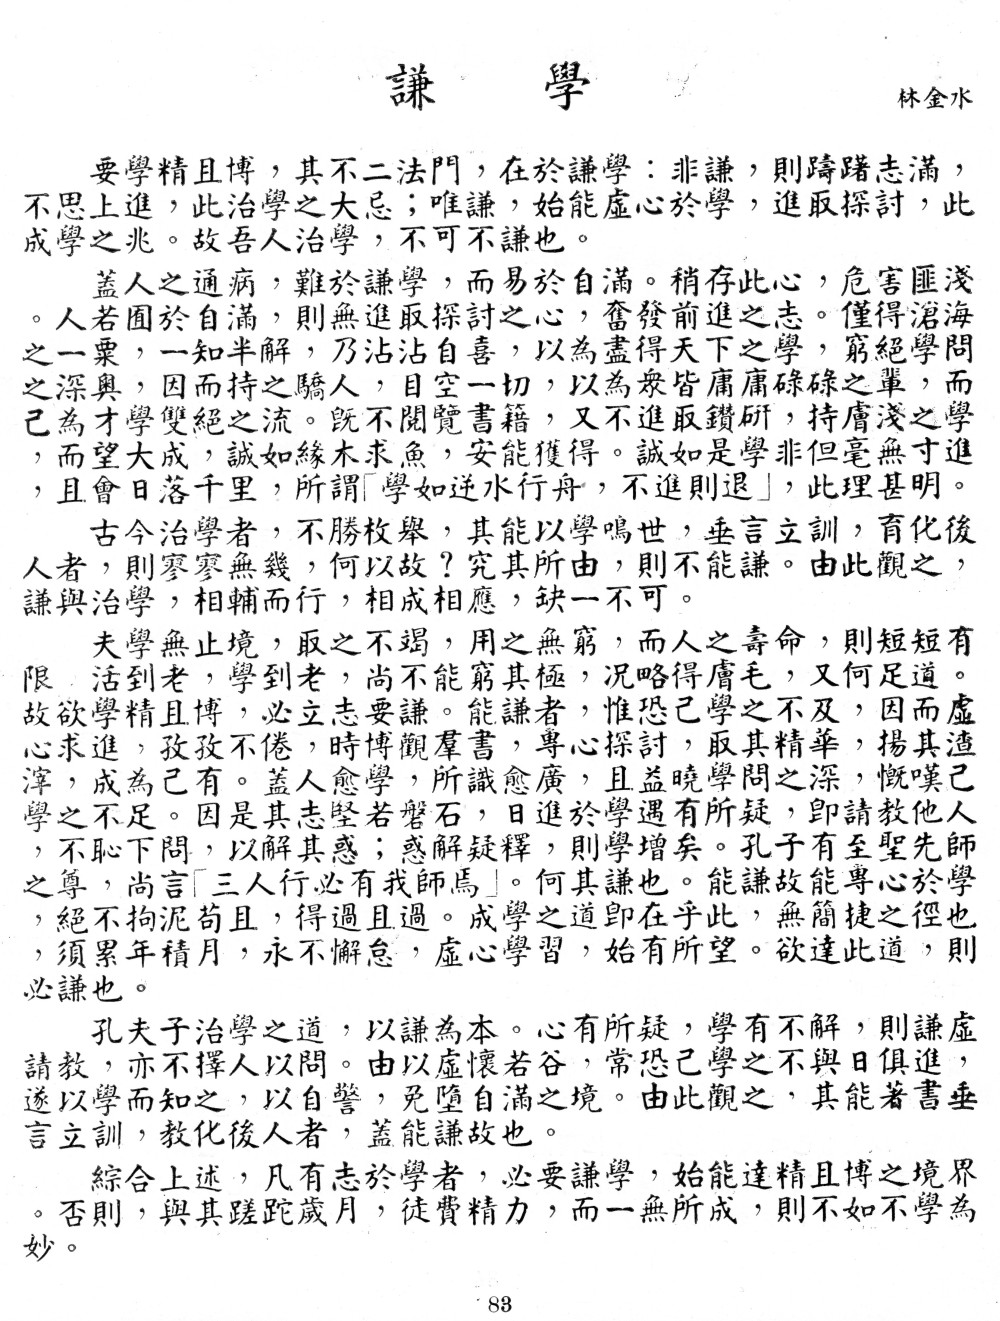 Essay in chinese